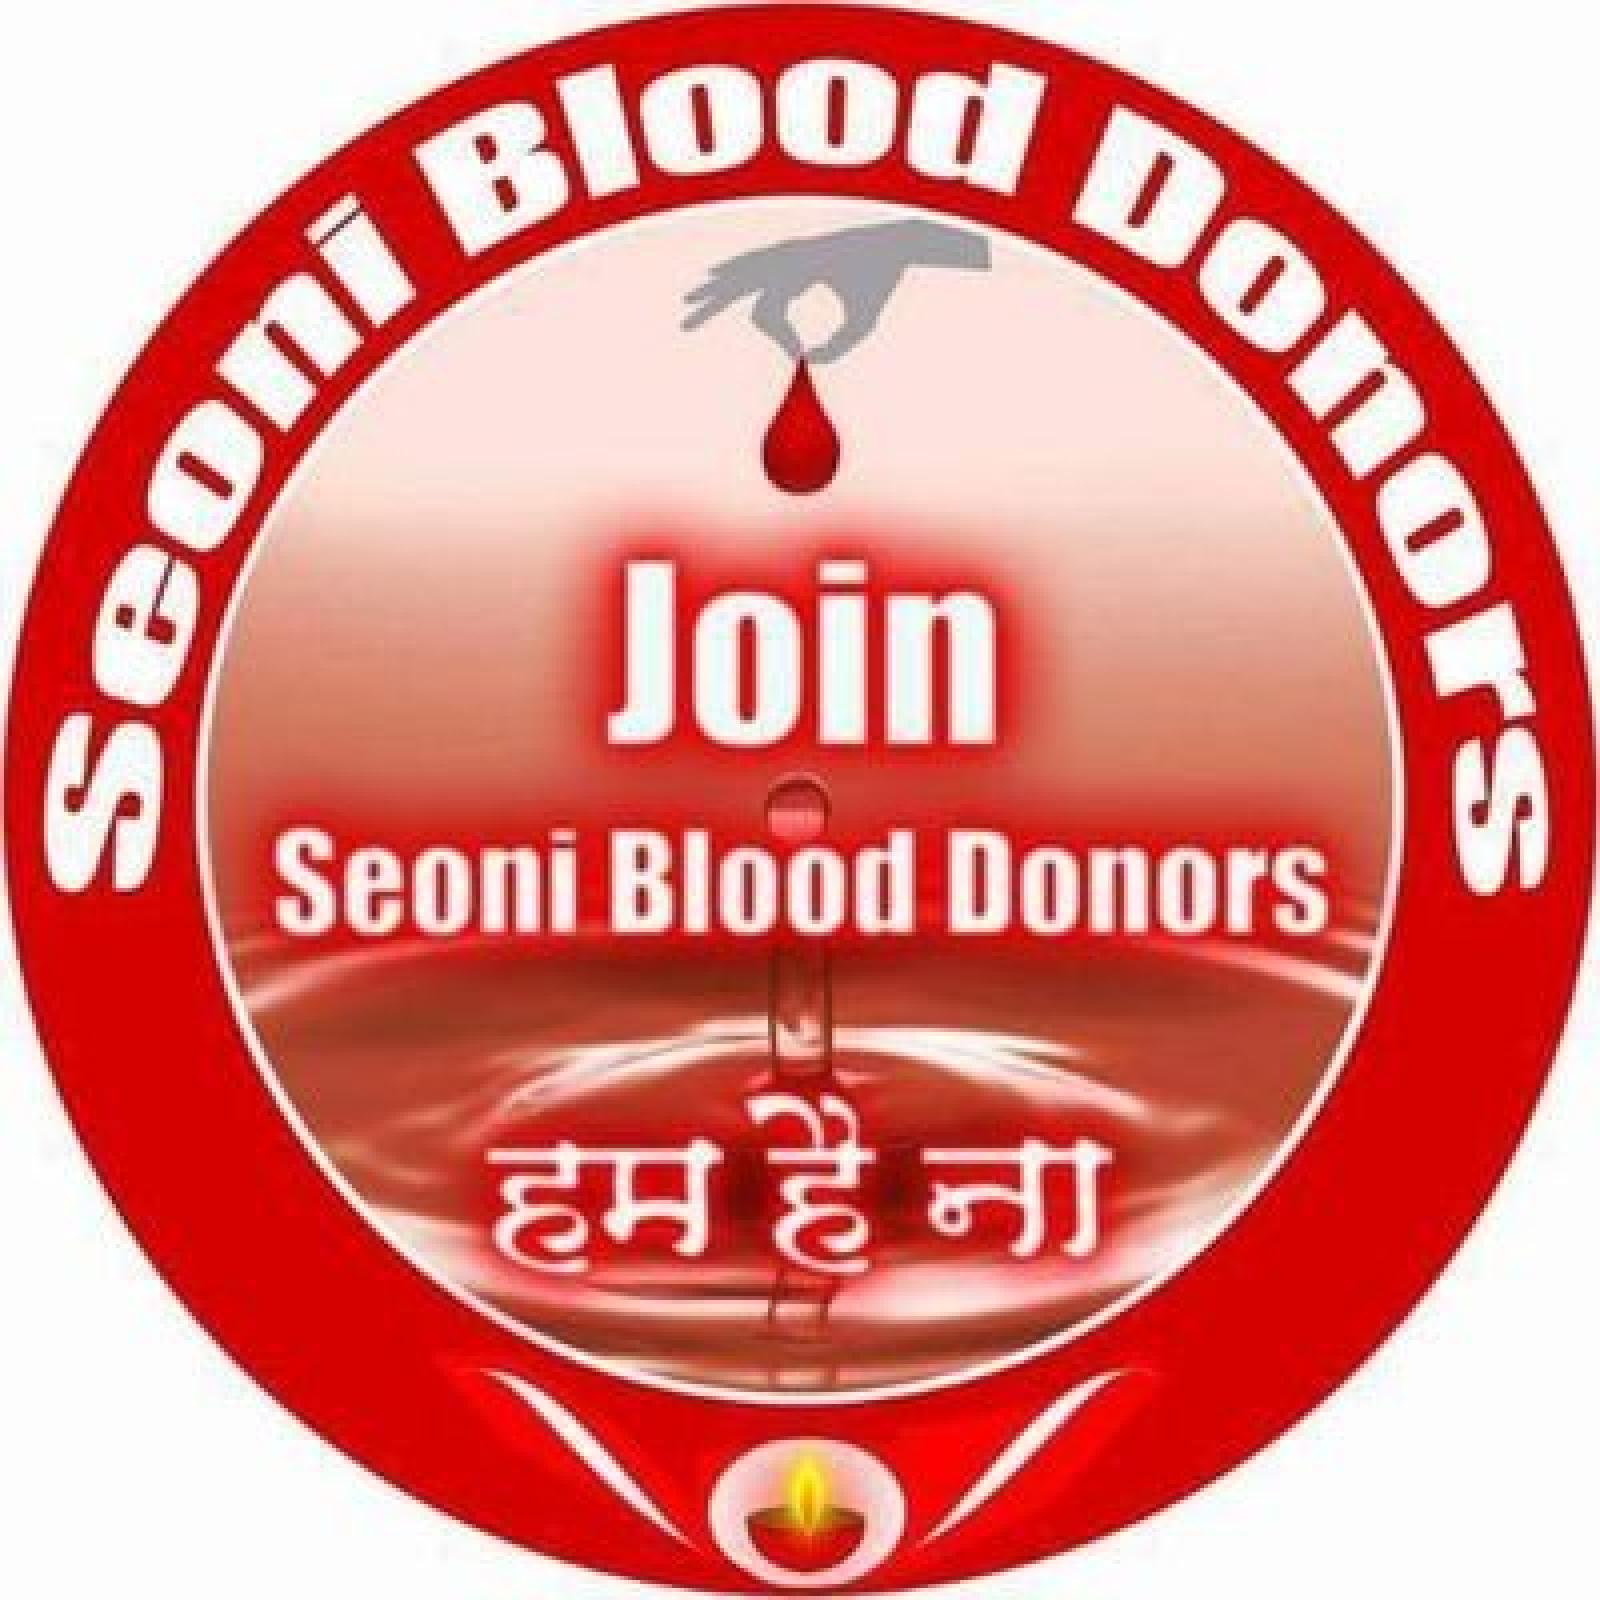 Seoni Blood Donors